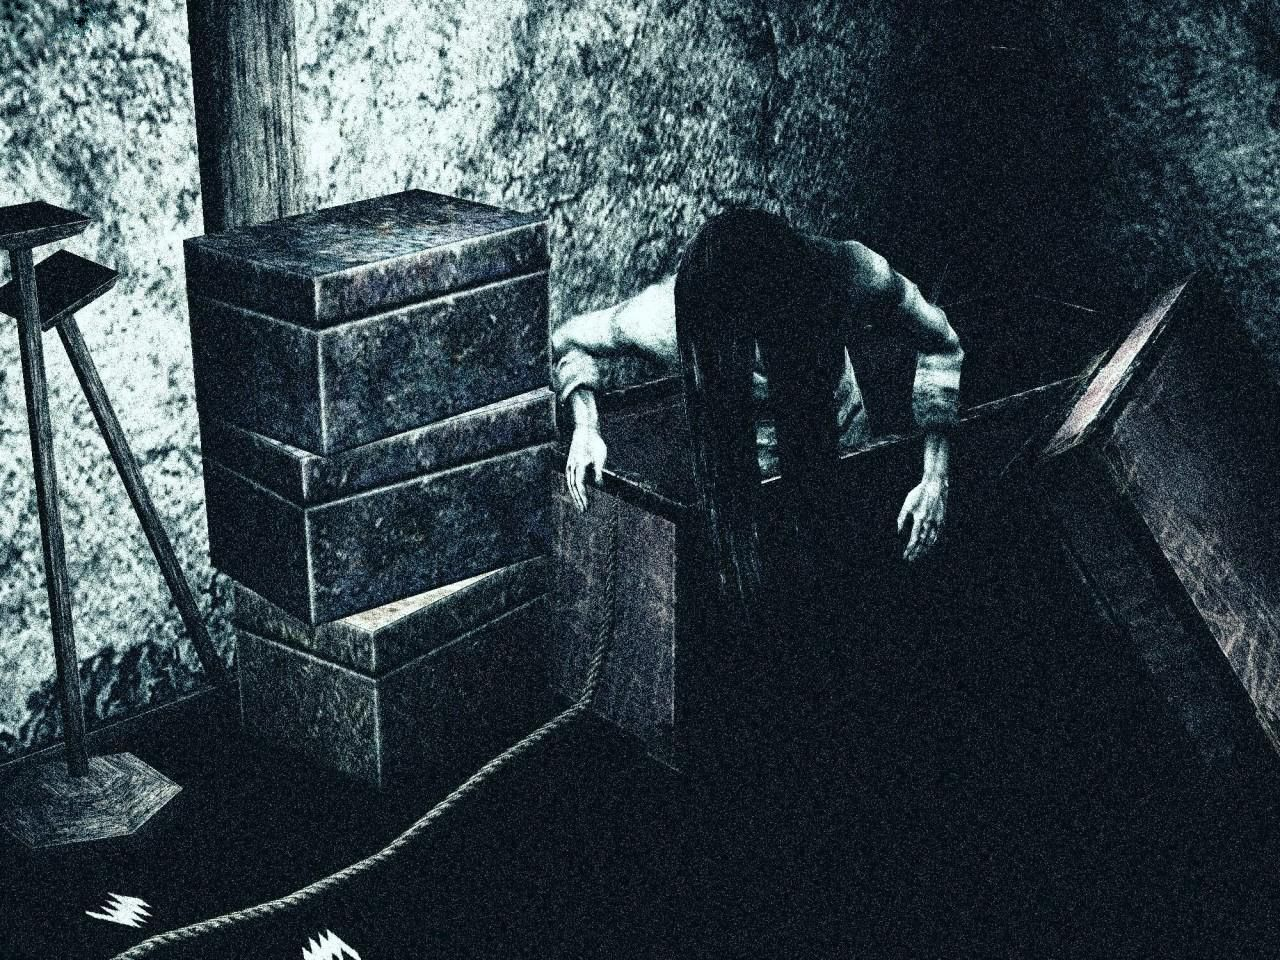 fatal frame ghosts - Google Search | Ghost Project | Pinterest